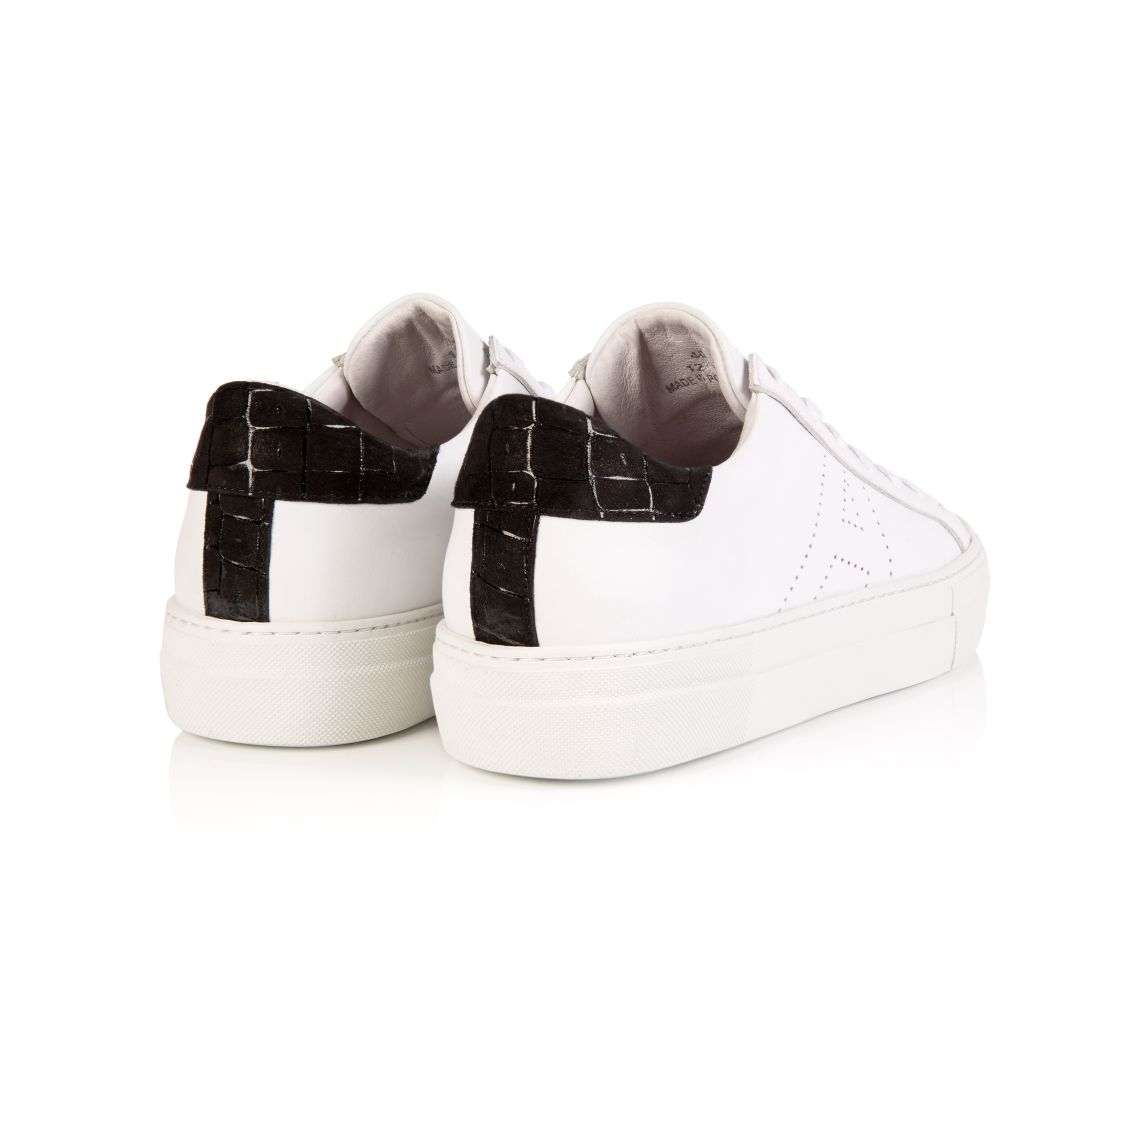 ROXY: WHITE & BLACK PLATFORM TRAINERS